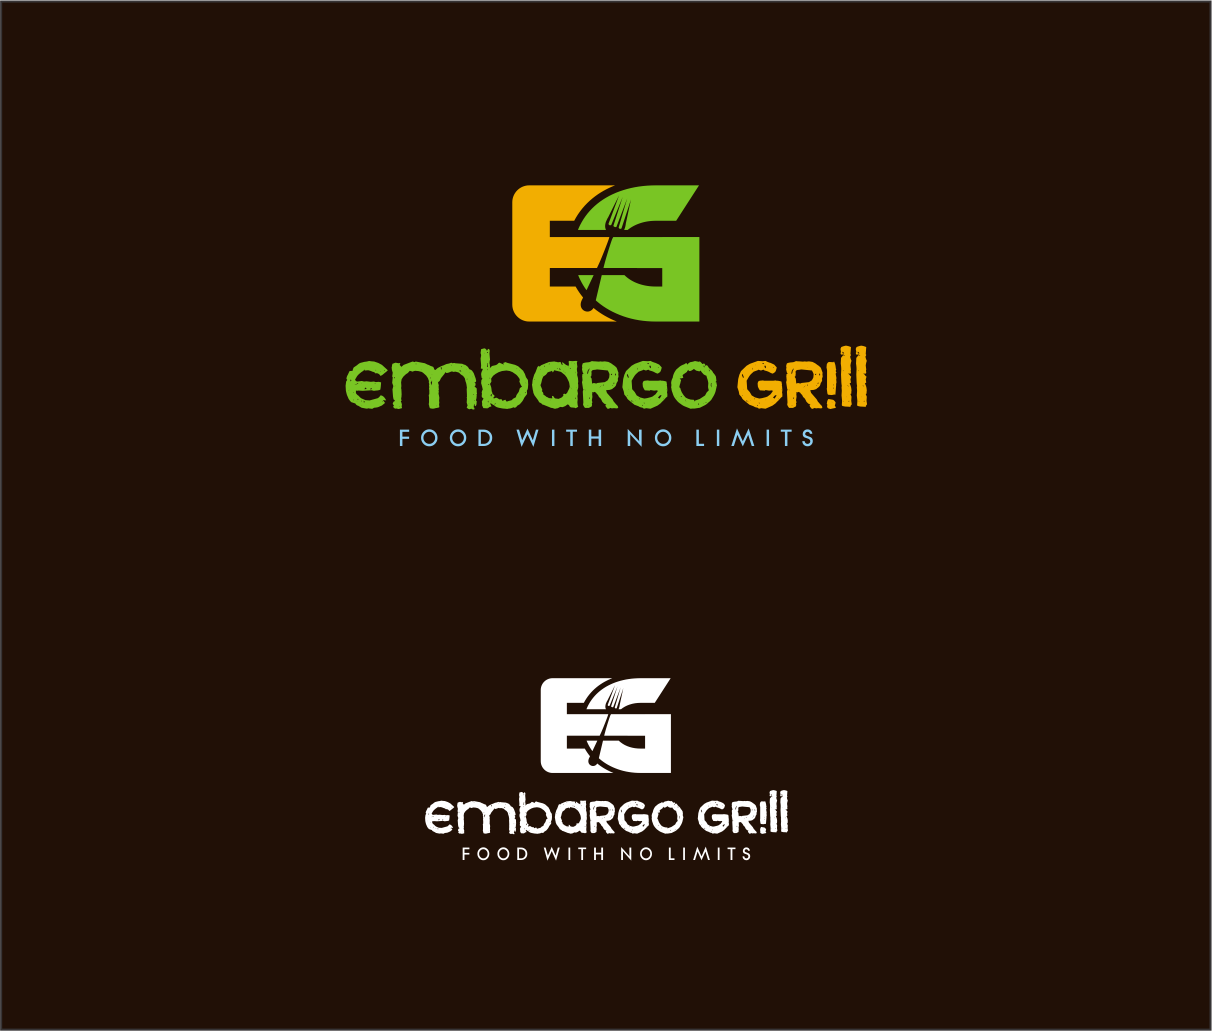 Logo Design by haidu - Entry No. 25 in the Logo Design Contest Captivating Logo Design for Embargo Grill.